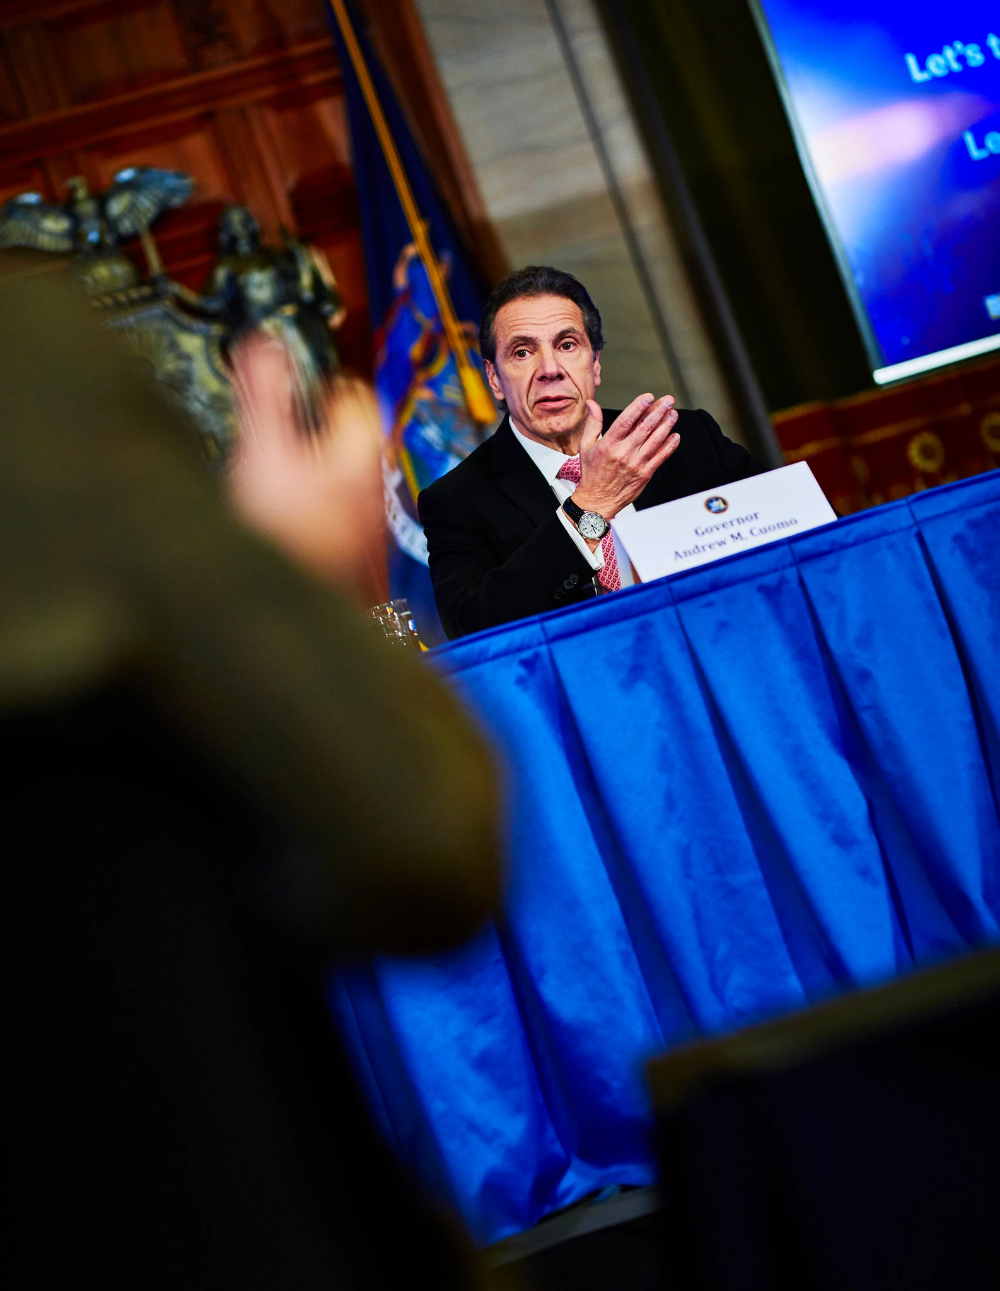 Opinion Tough Love From Andrew Cuomo The New York Times In 2020 With Images